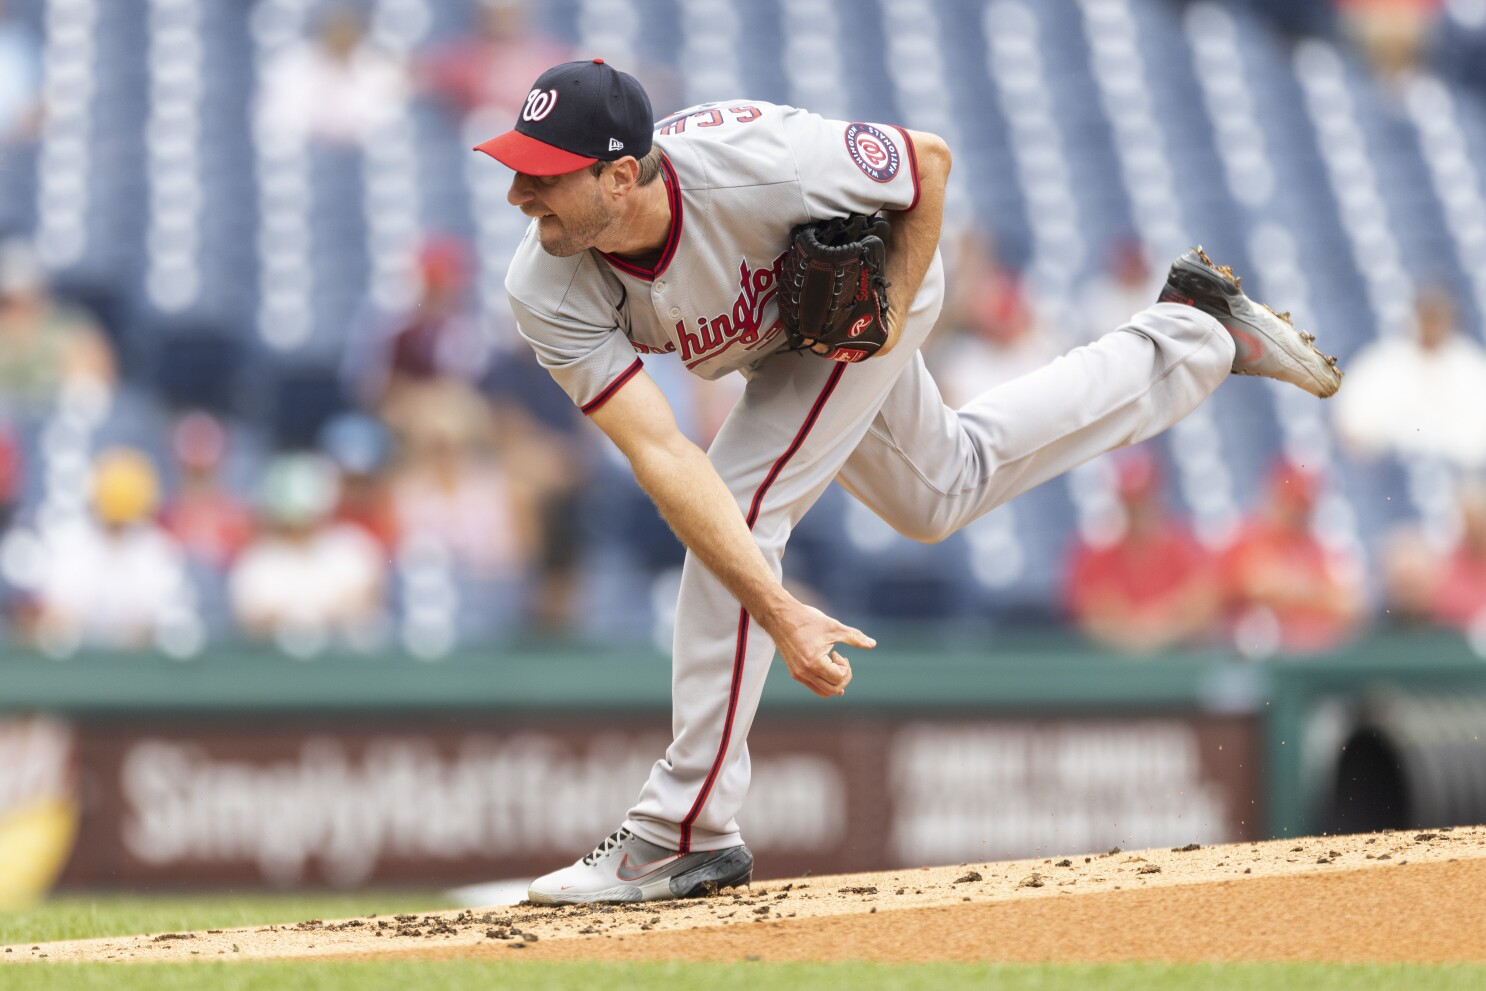 Padres, not Dodgers, reportedly close to acquiring Max Scherzer - Los  Angeles Times